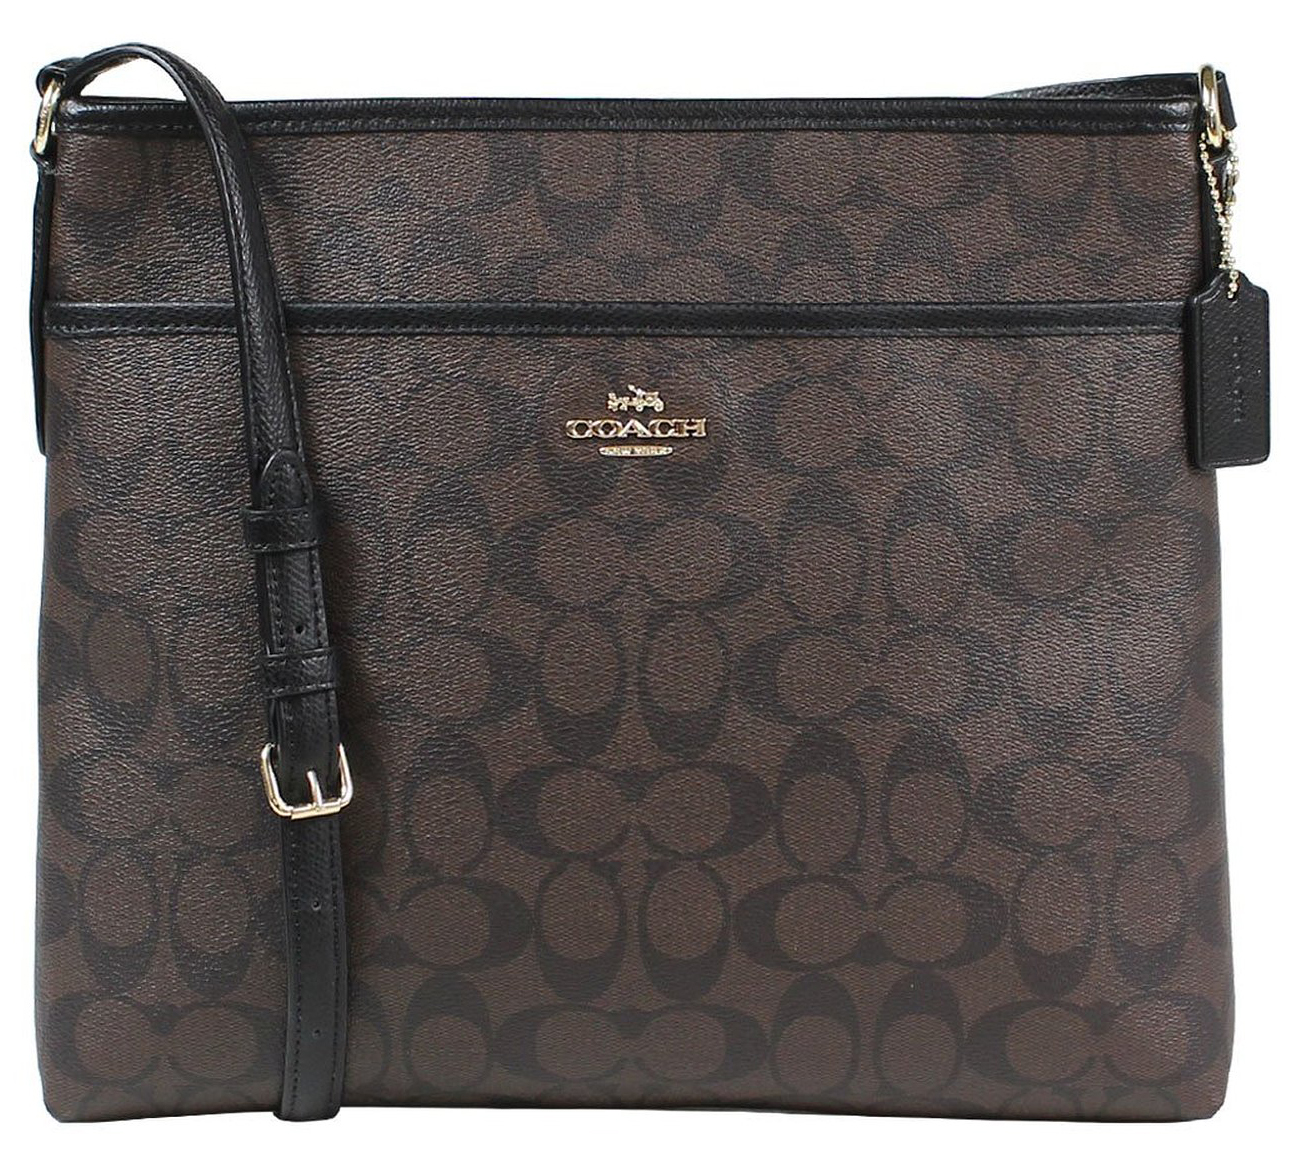 Coach Signature File Bag Crossbody Black / Brown # F34938